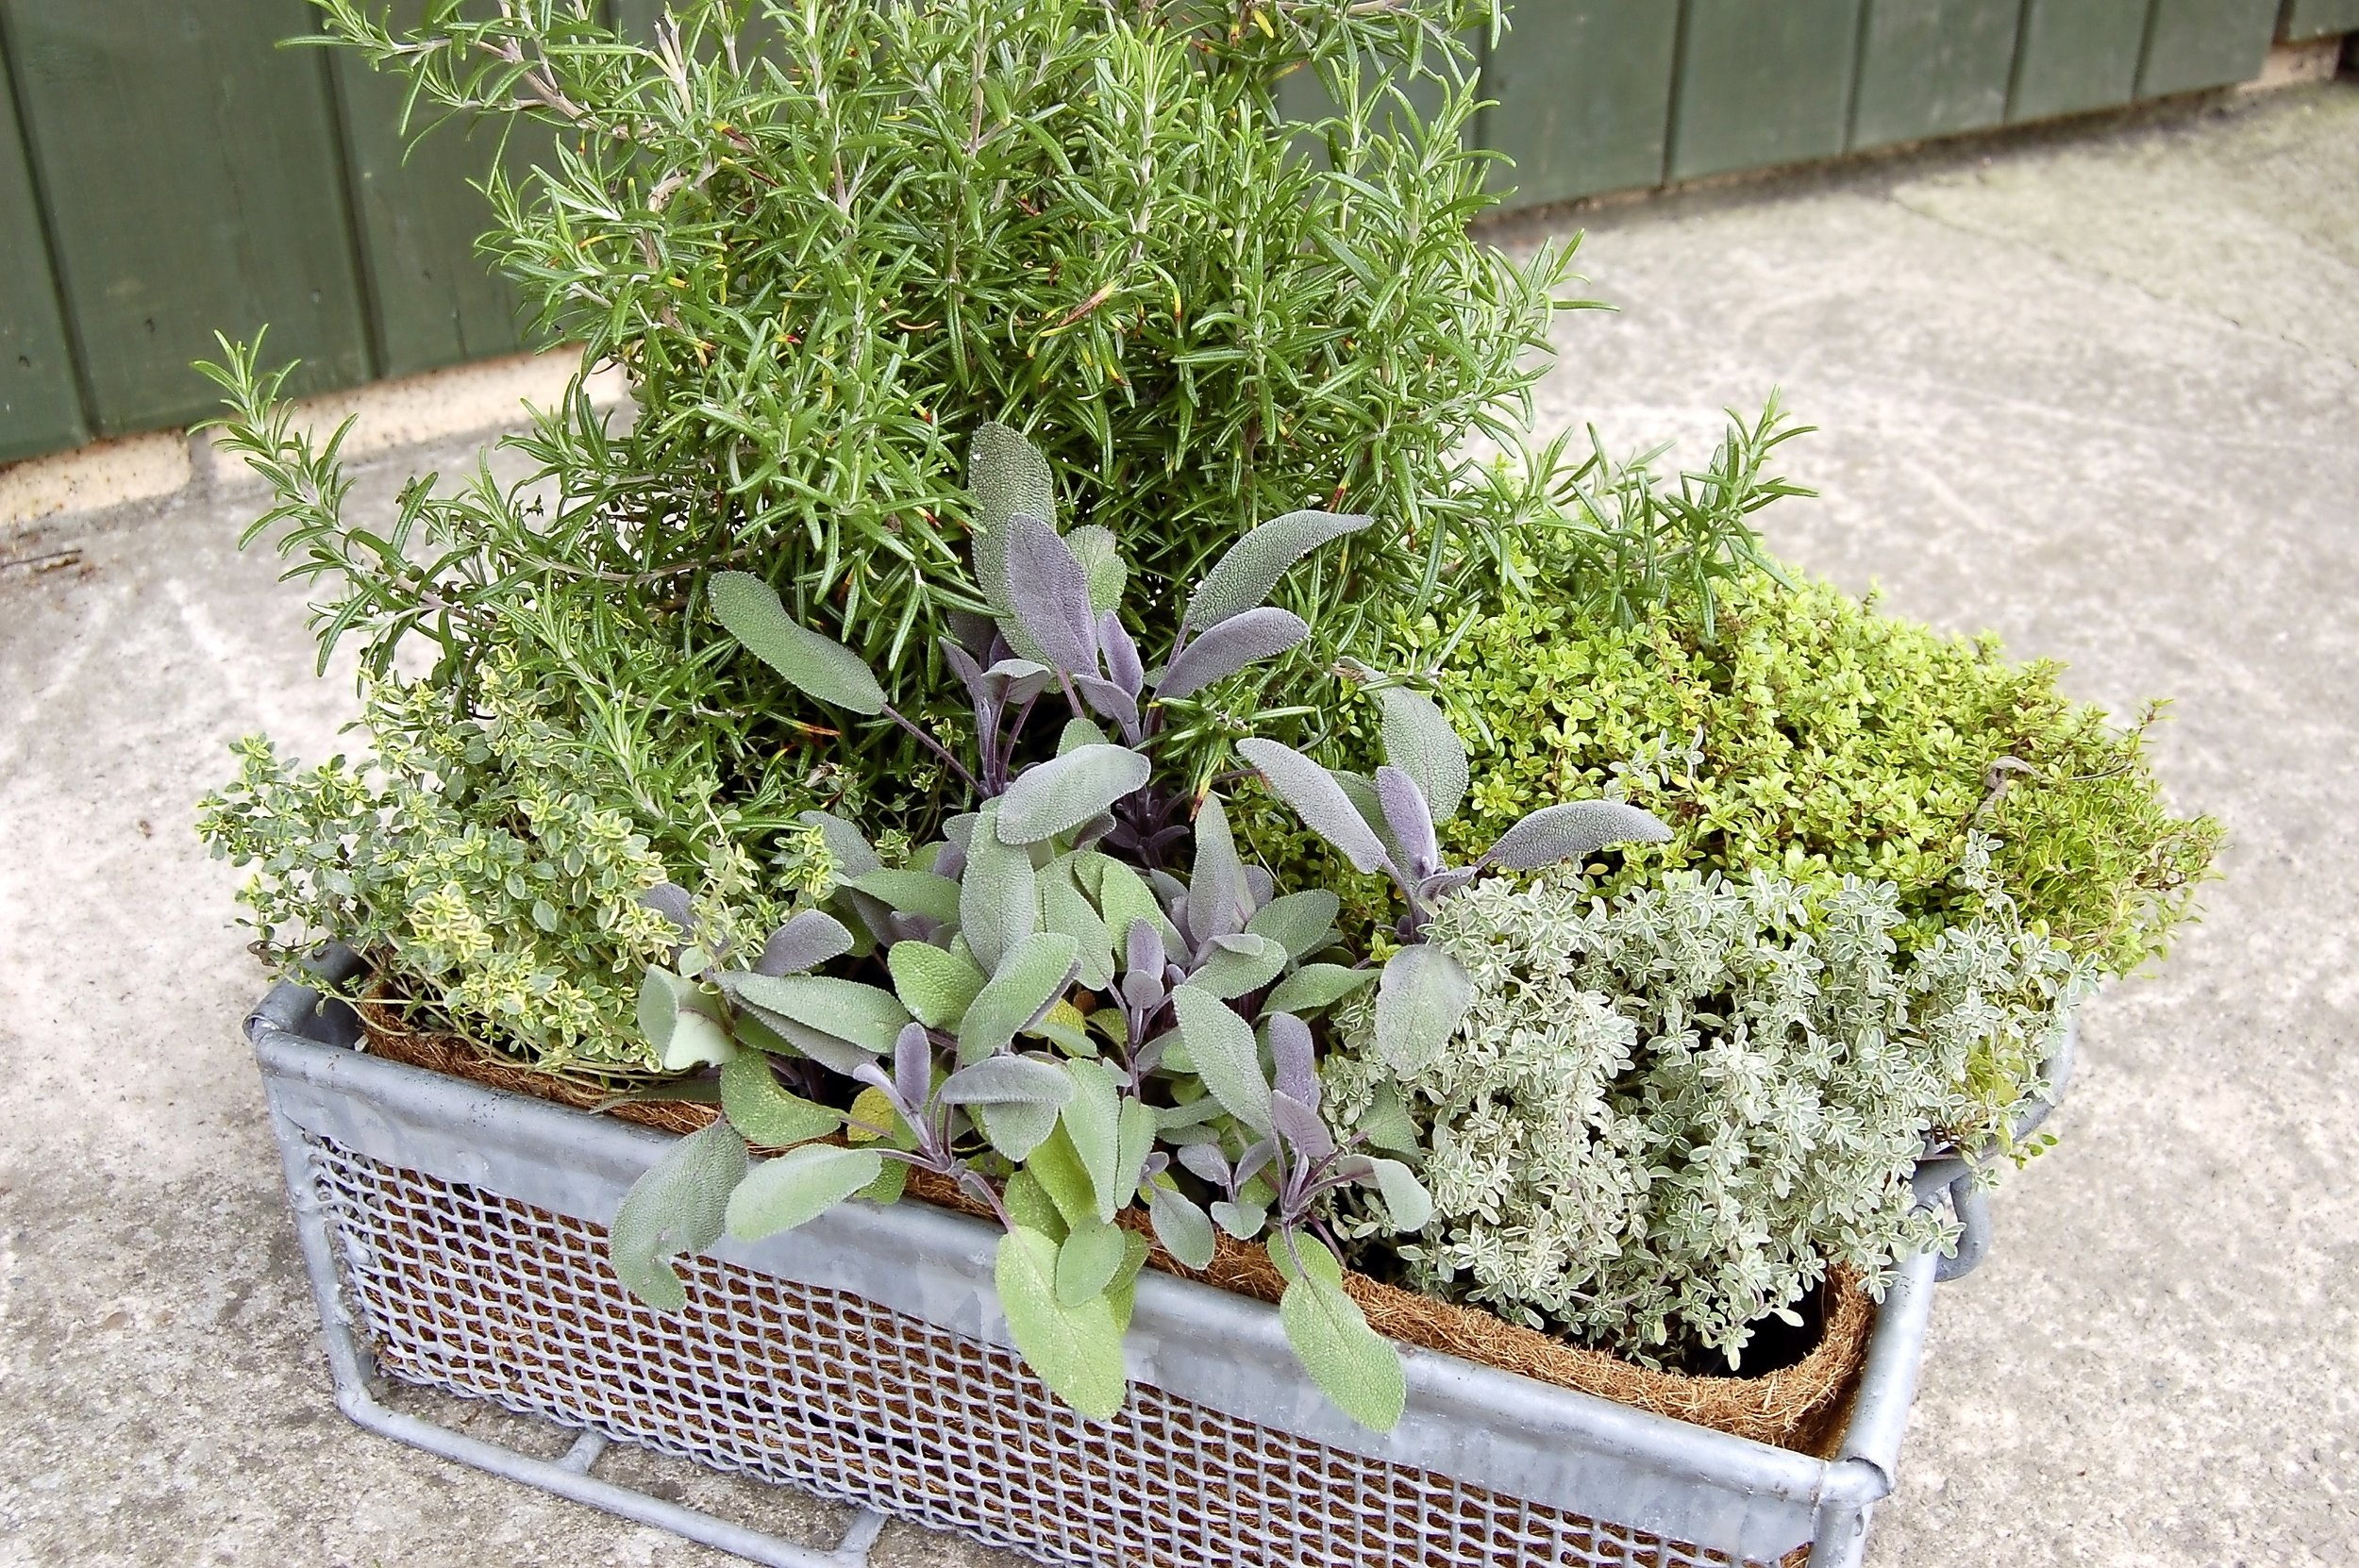 3. Use a selection of smaller plants with different shapes and foliage to plant a mixed container